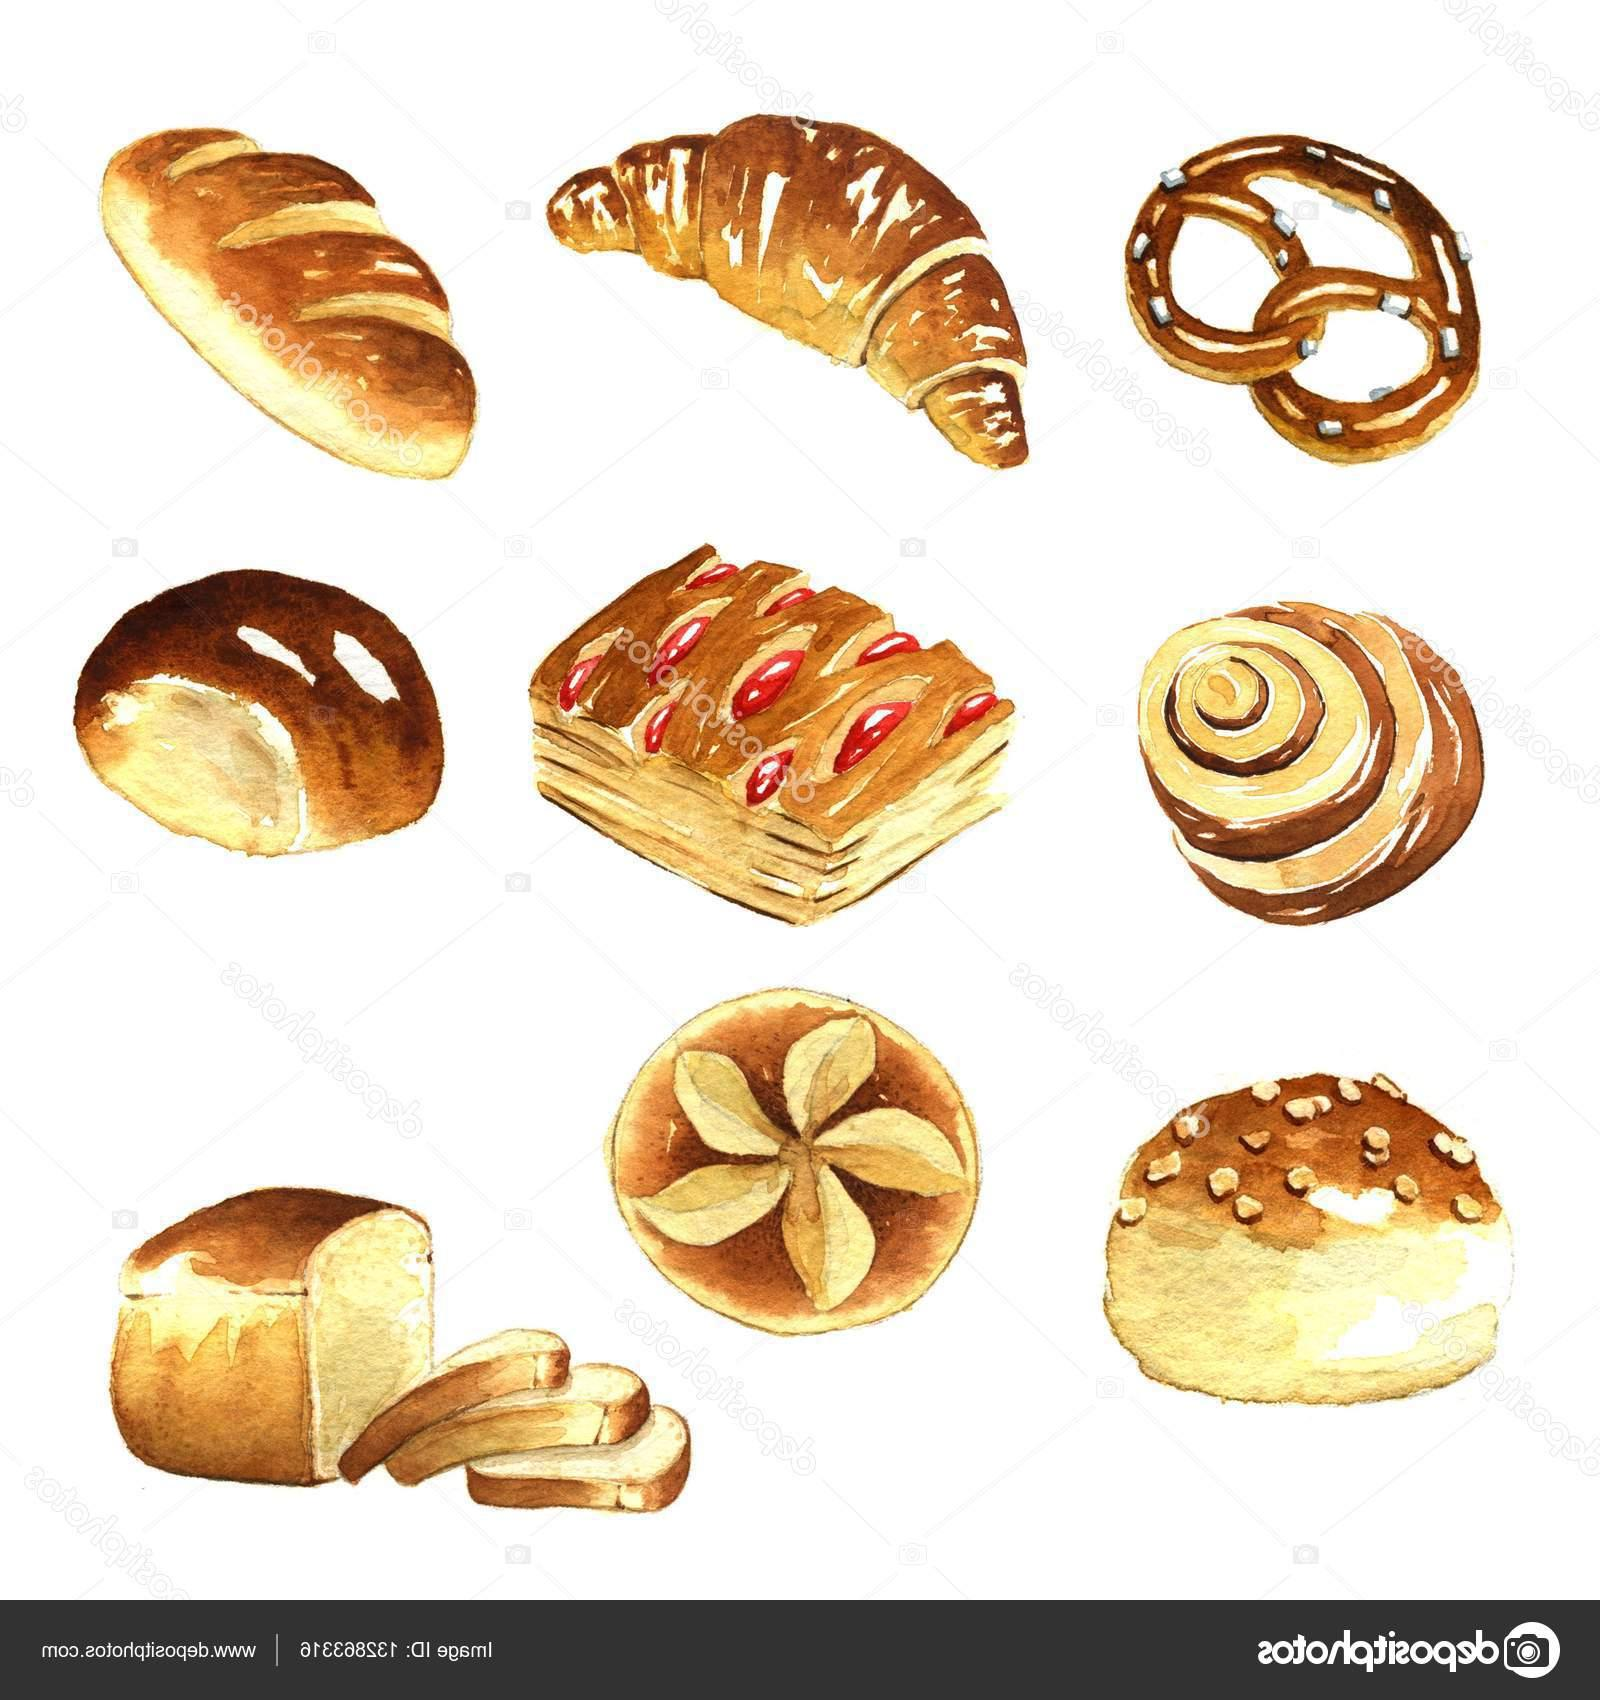 Best free stock photo. Bread clipart watercolor